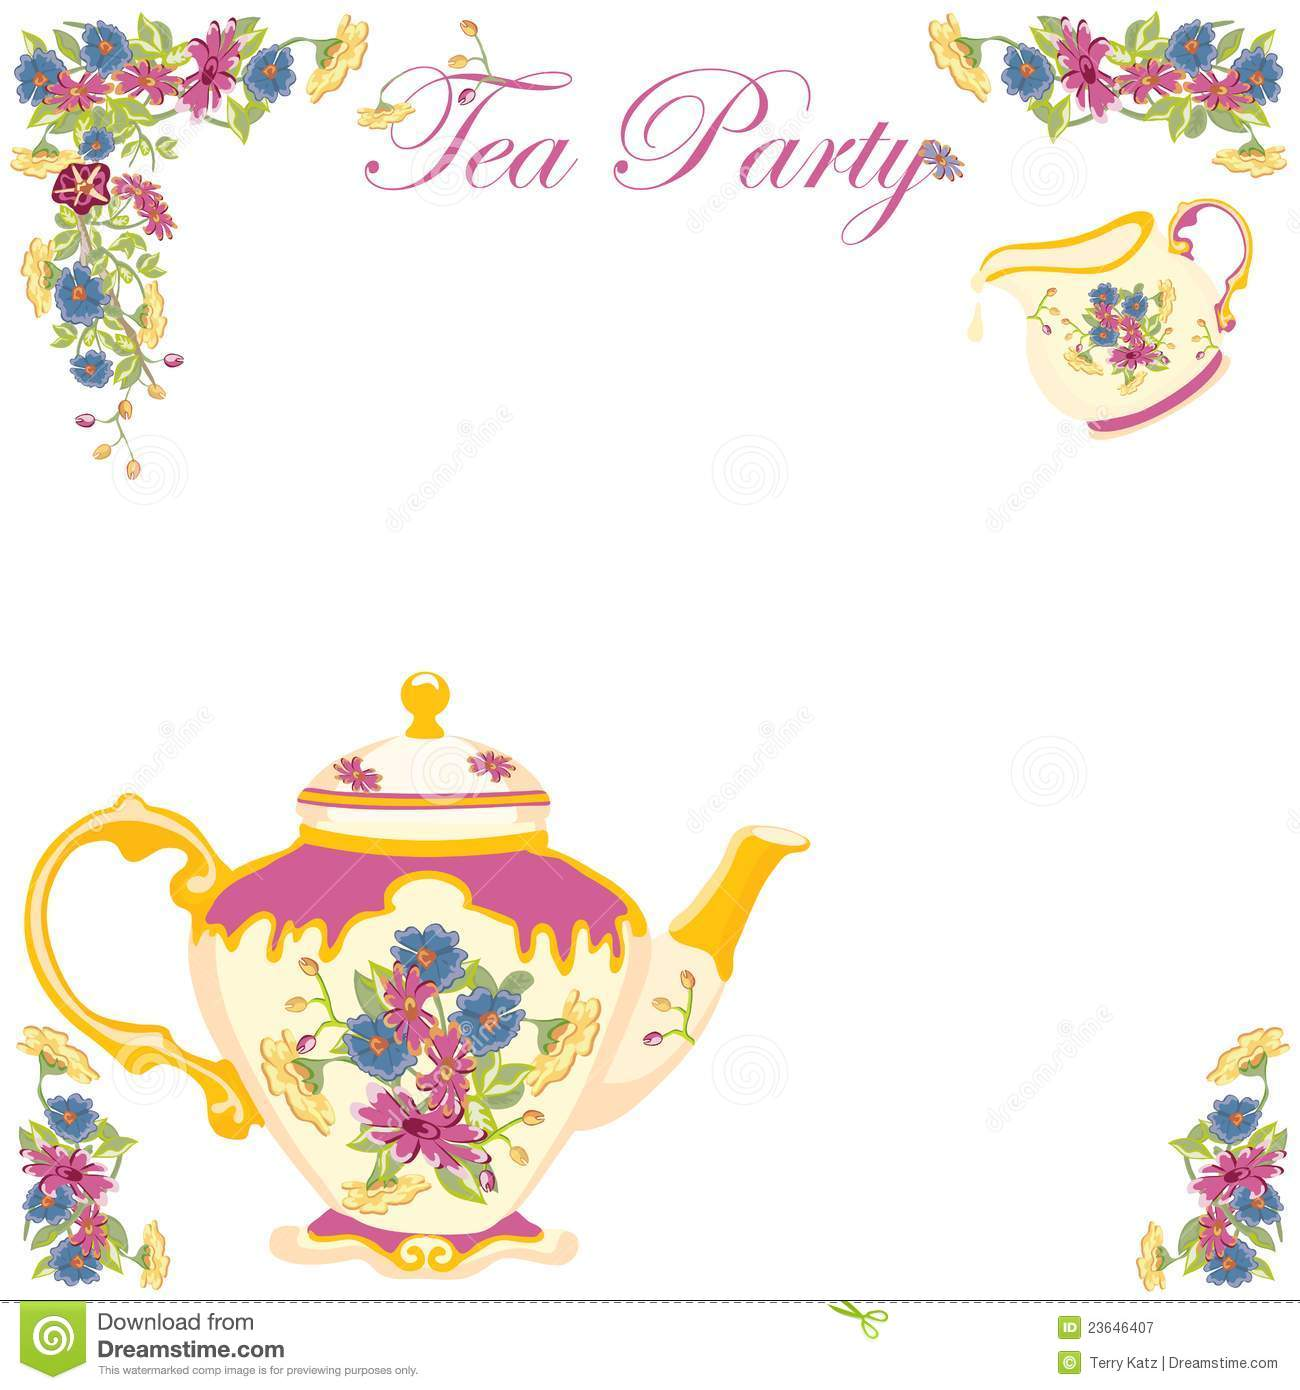 Victorian Tea Pot Tea Party Invitation Stock Vector - Image: 23646407